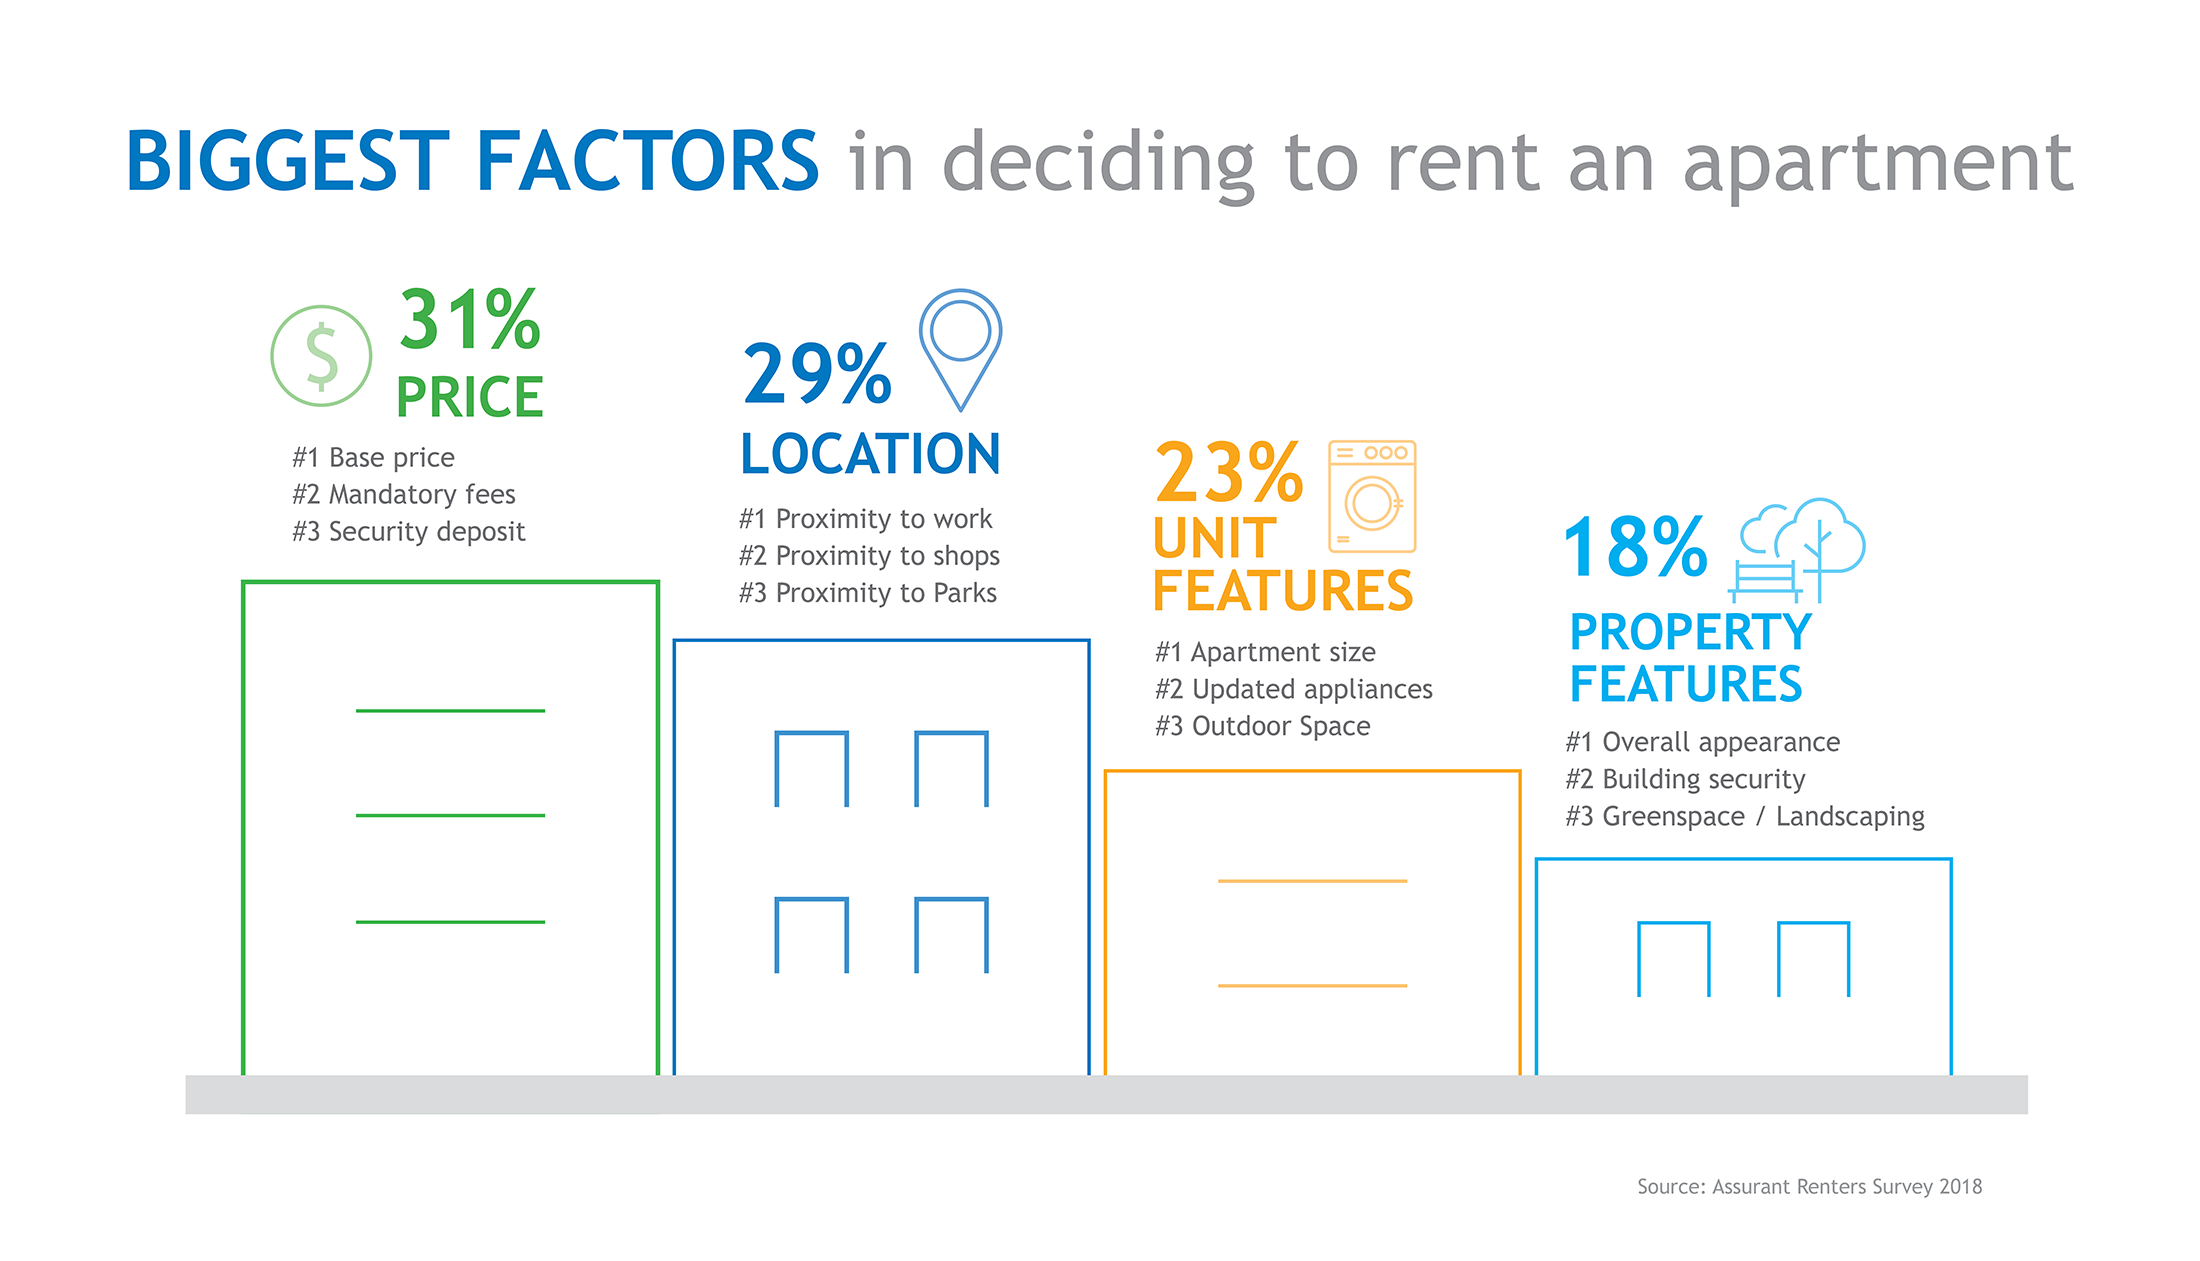 Biggest-Factors-Apartment-Rental